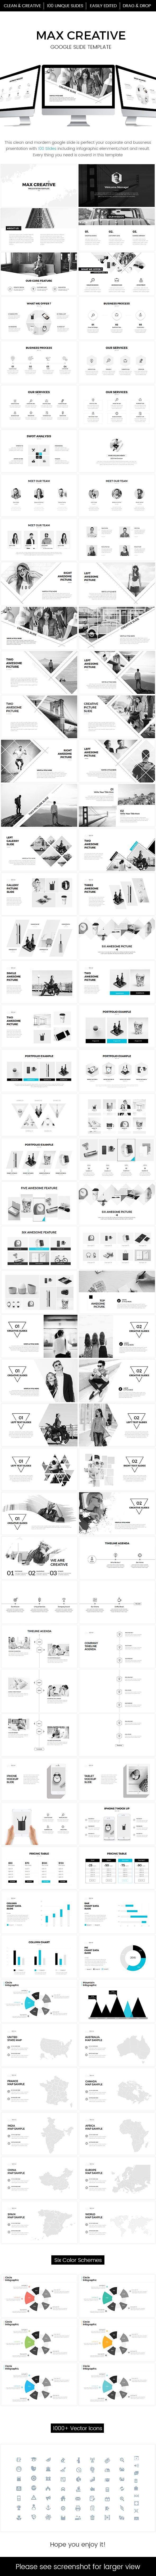 Max Creative Google Slide Template - Google Slides Presentation Templates